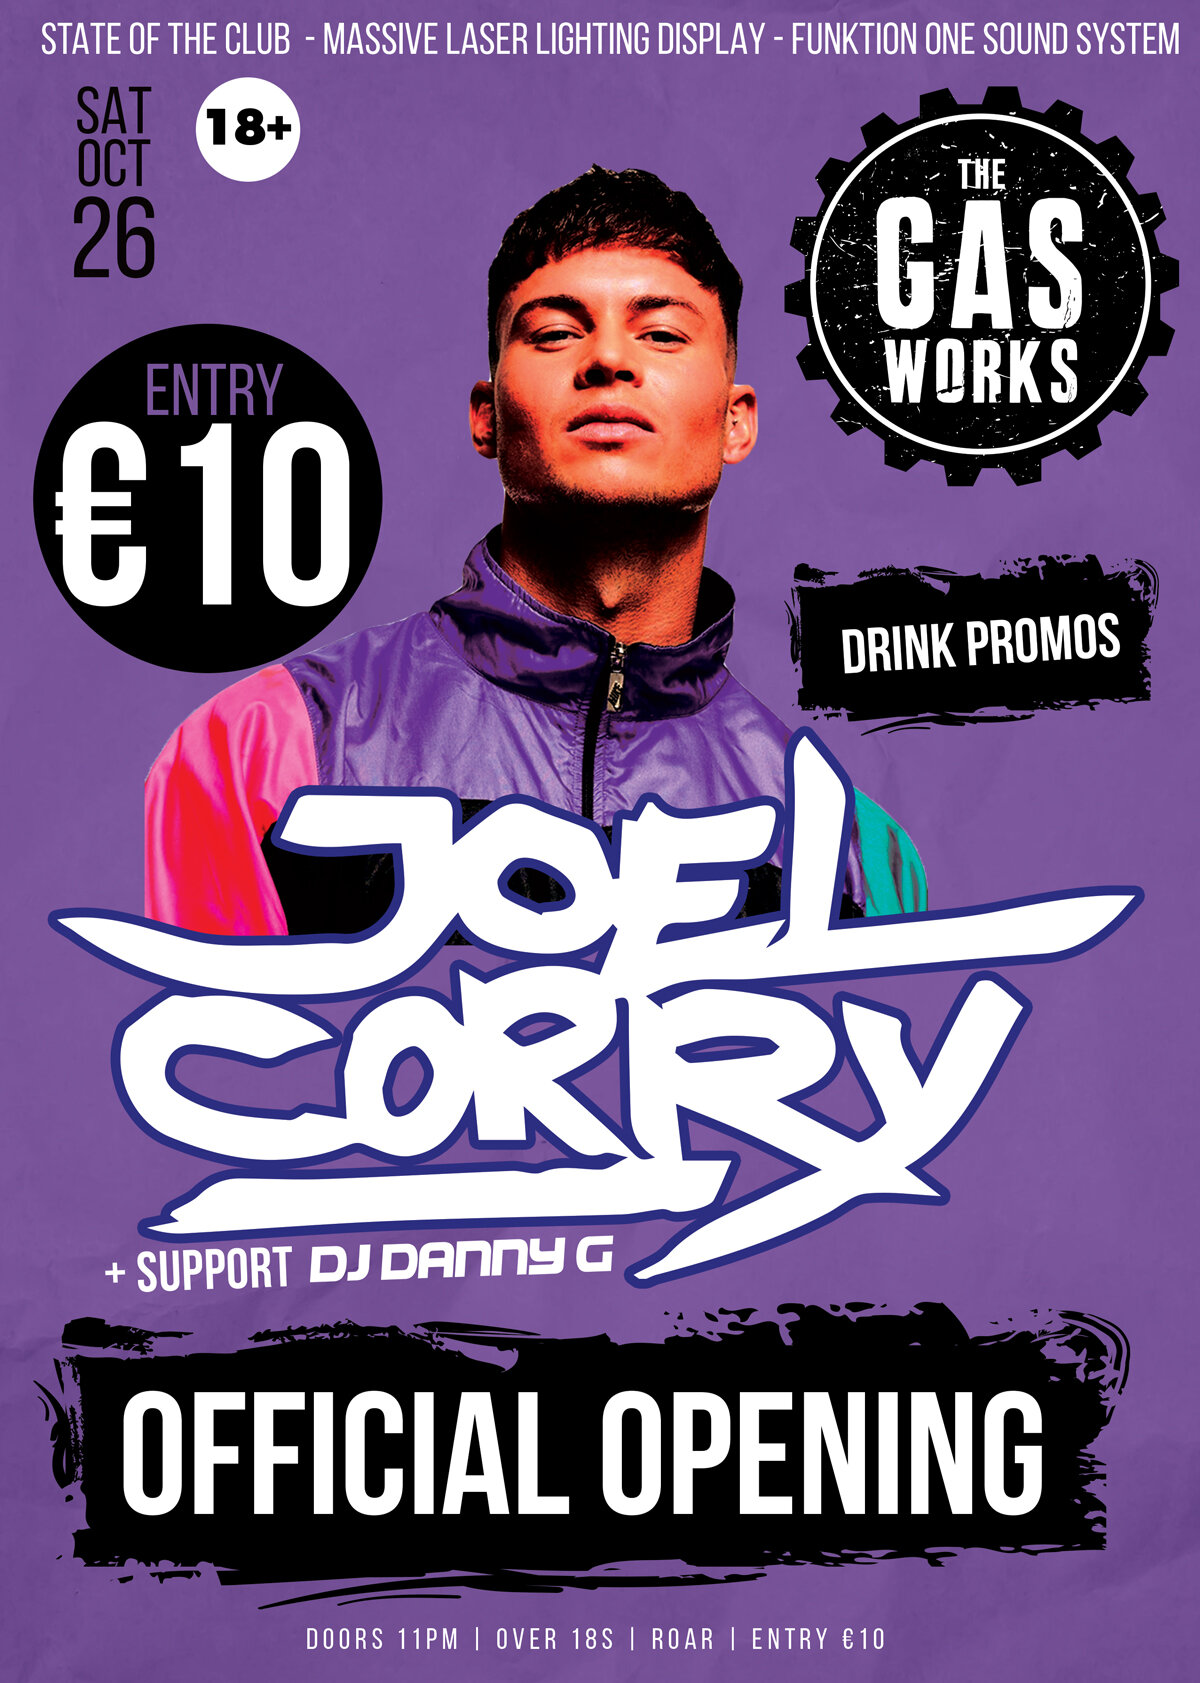 the-gasworks---dj-JOEL-CORRY-OFFICIAL-OPENING-PARTY-SAT-OCT-26--2019.jpg